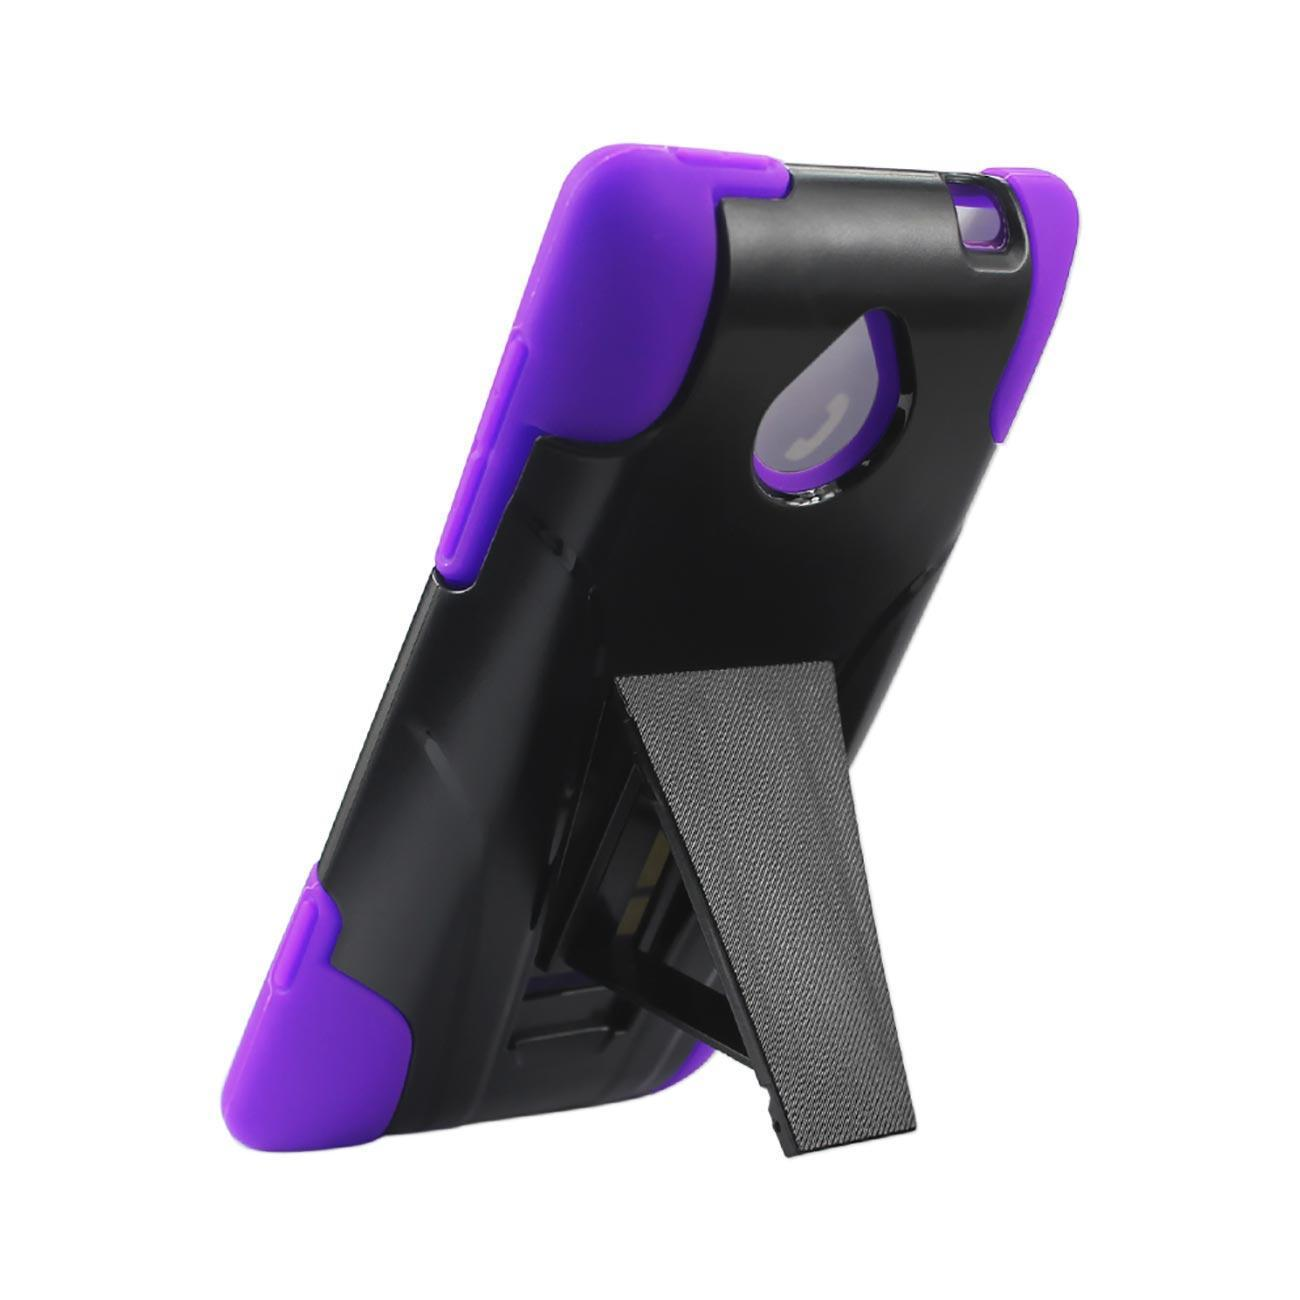 Reiko Htc 8xt Hybrid Heavy Duty Case With Kickstand In Purple Black